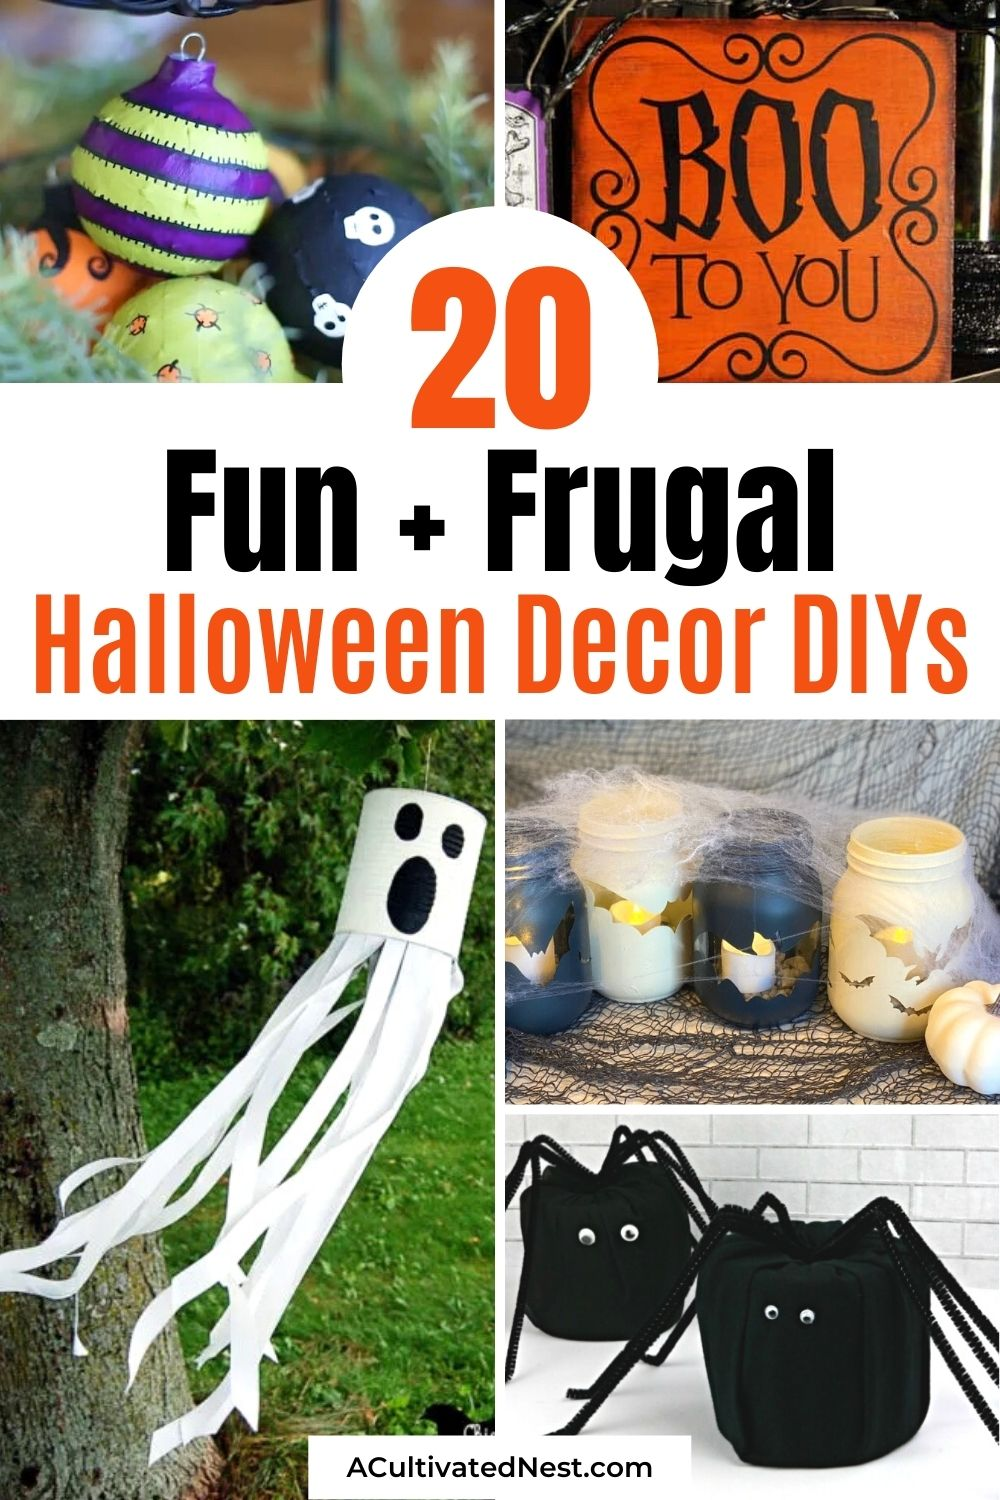 20 Budget-Friendly Halloween DIY Decorations- Get your home decorated for Halloween on a budget with these fun and frugal Halloween DIY decorations! There is so much spooky fun décor you can make! | #HalloweenDIY #diyProject #HalloweenCrafts #HalloweenDecorations #ACultivatedNest